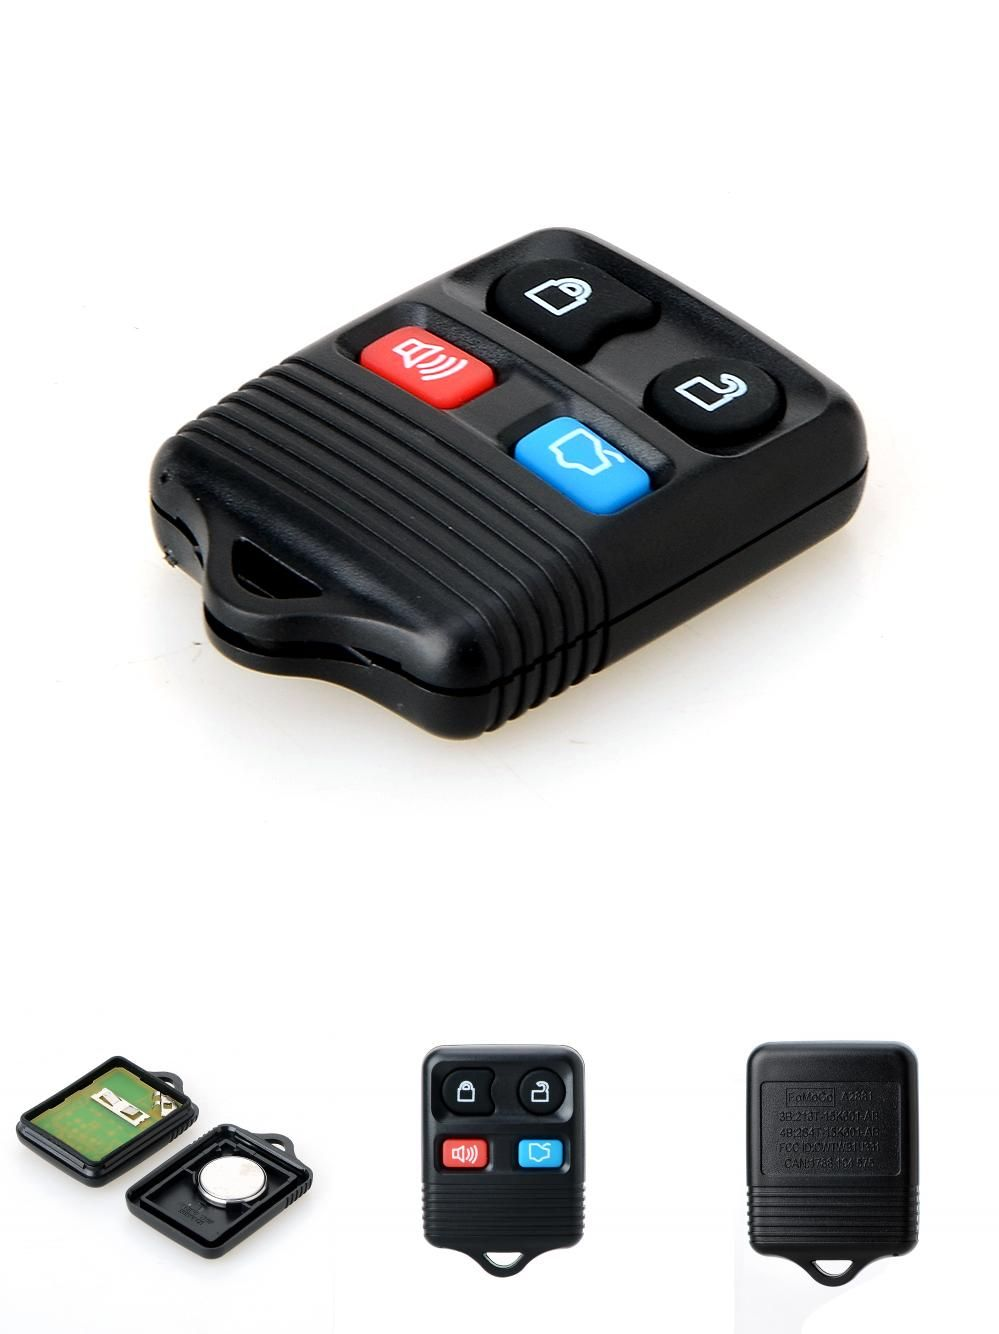 [Visit to Buy] 4 Buttons Remote Car Key Transit Keyless Entry Fob For Ford Complete Remote Control Circuid Board Included  sc 1 st  Pinterest & Visit to Buy] 4 Buttons Remote Car Key Transit Keyless Entry Fob ... markmcfarlin.com